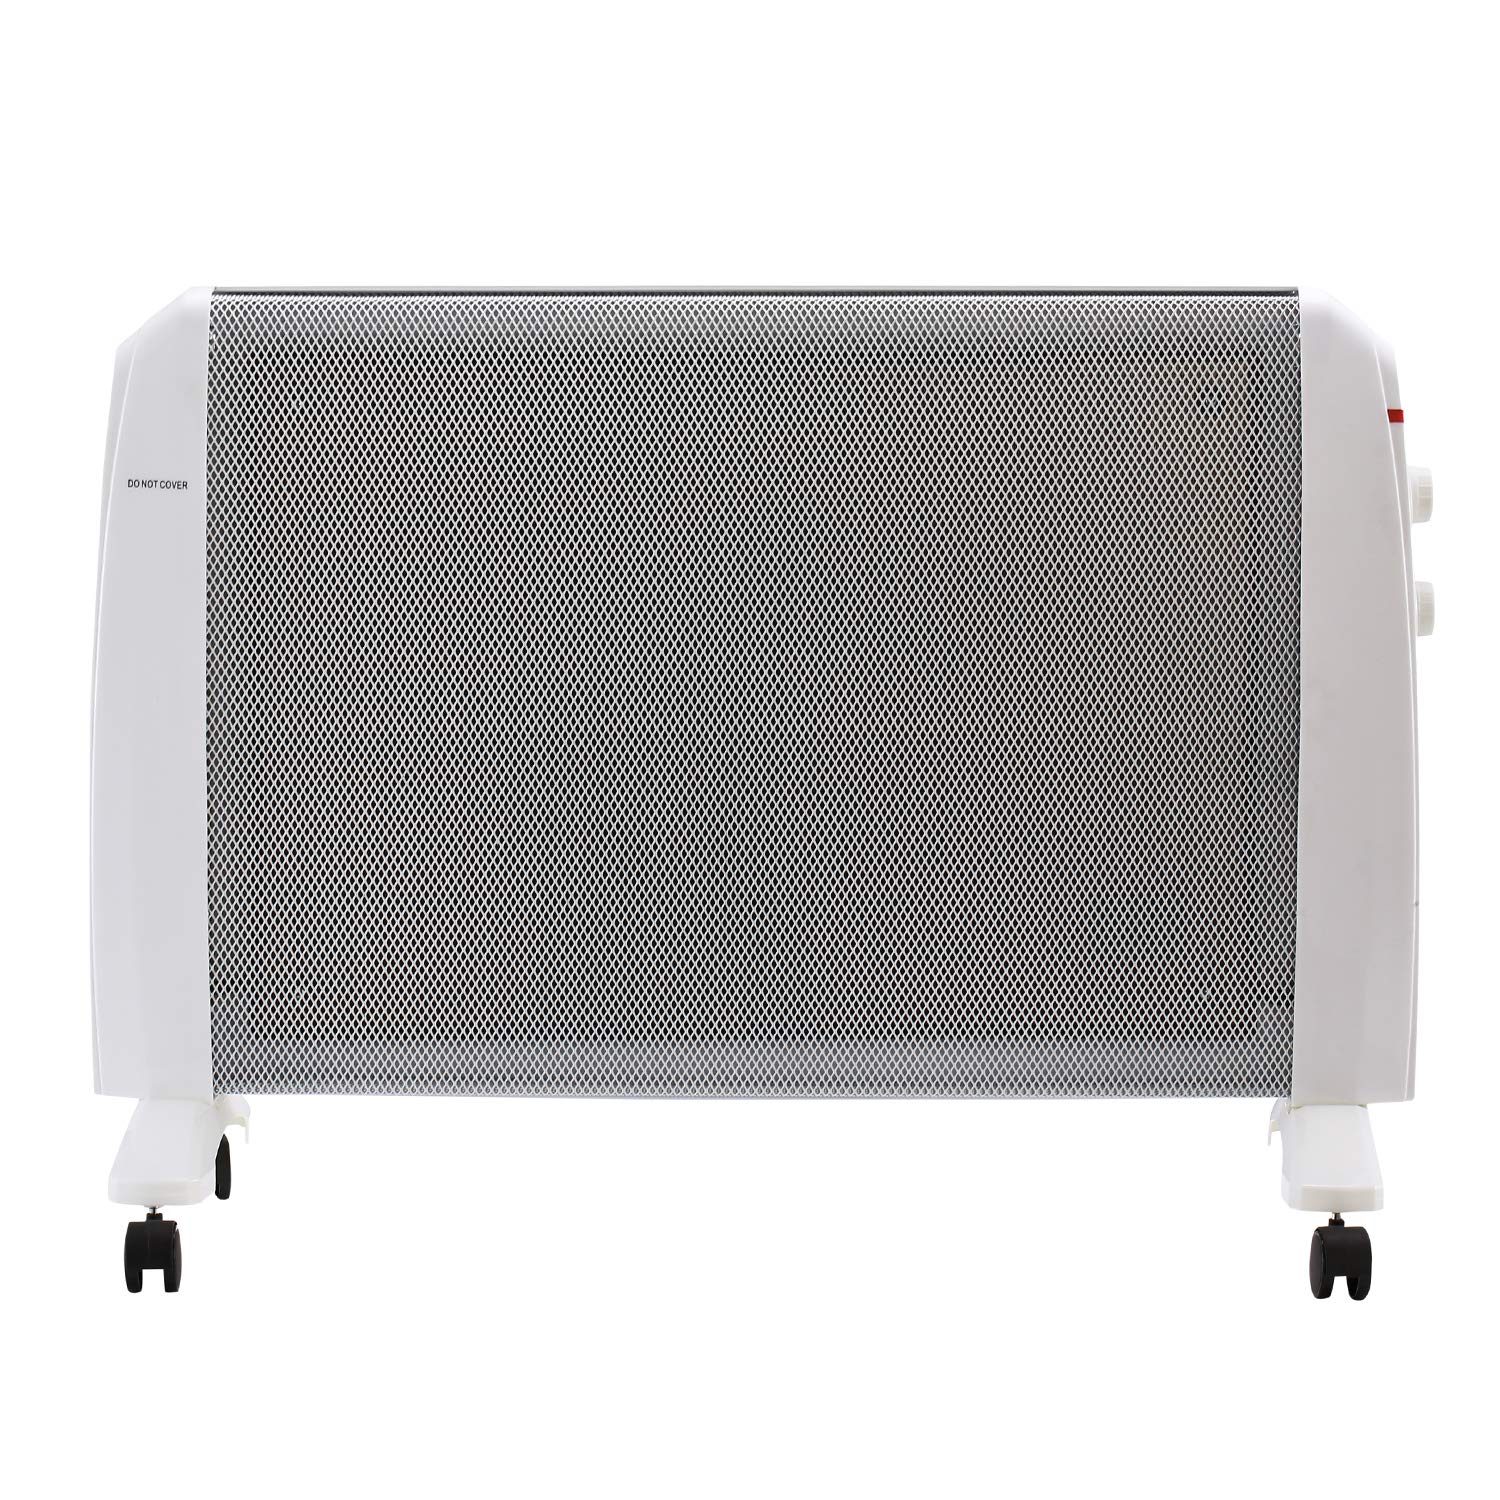 DOIT 34Inch White Convector Panel Heater w Wheels,Space Heater for Bedroom Home Office Electric Wall Heater